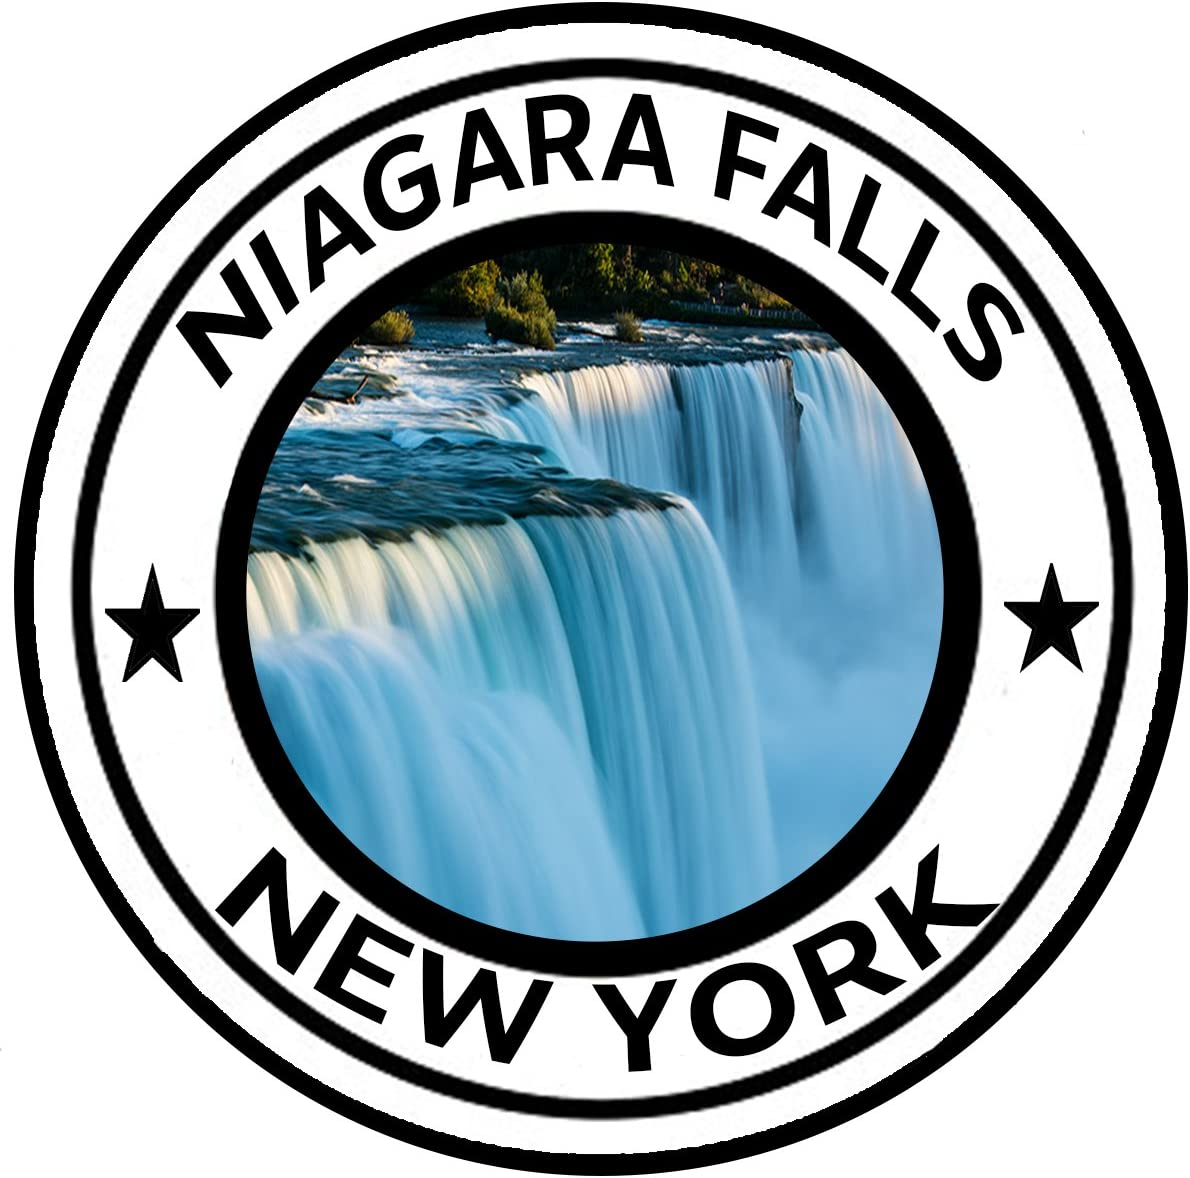 Rogue River Tactical Niagara Falls New York National Monument Park Sticker 5 Round Car Auto Decal